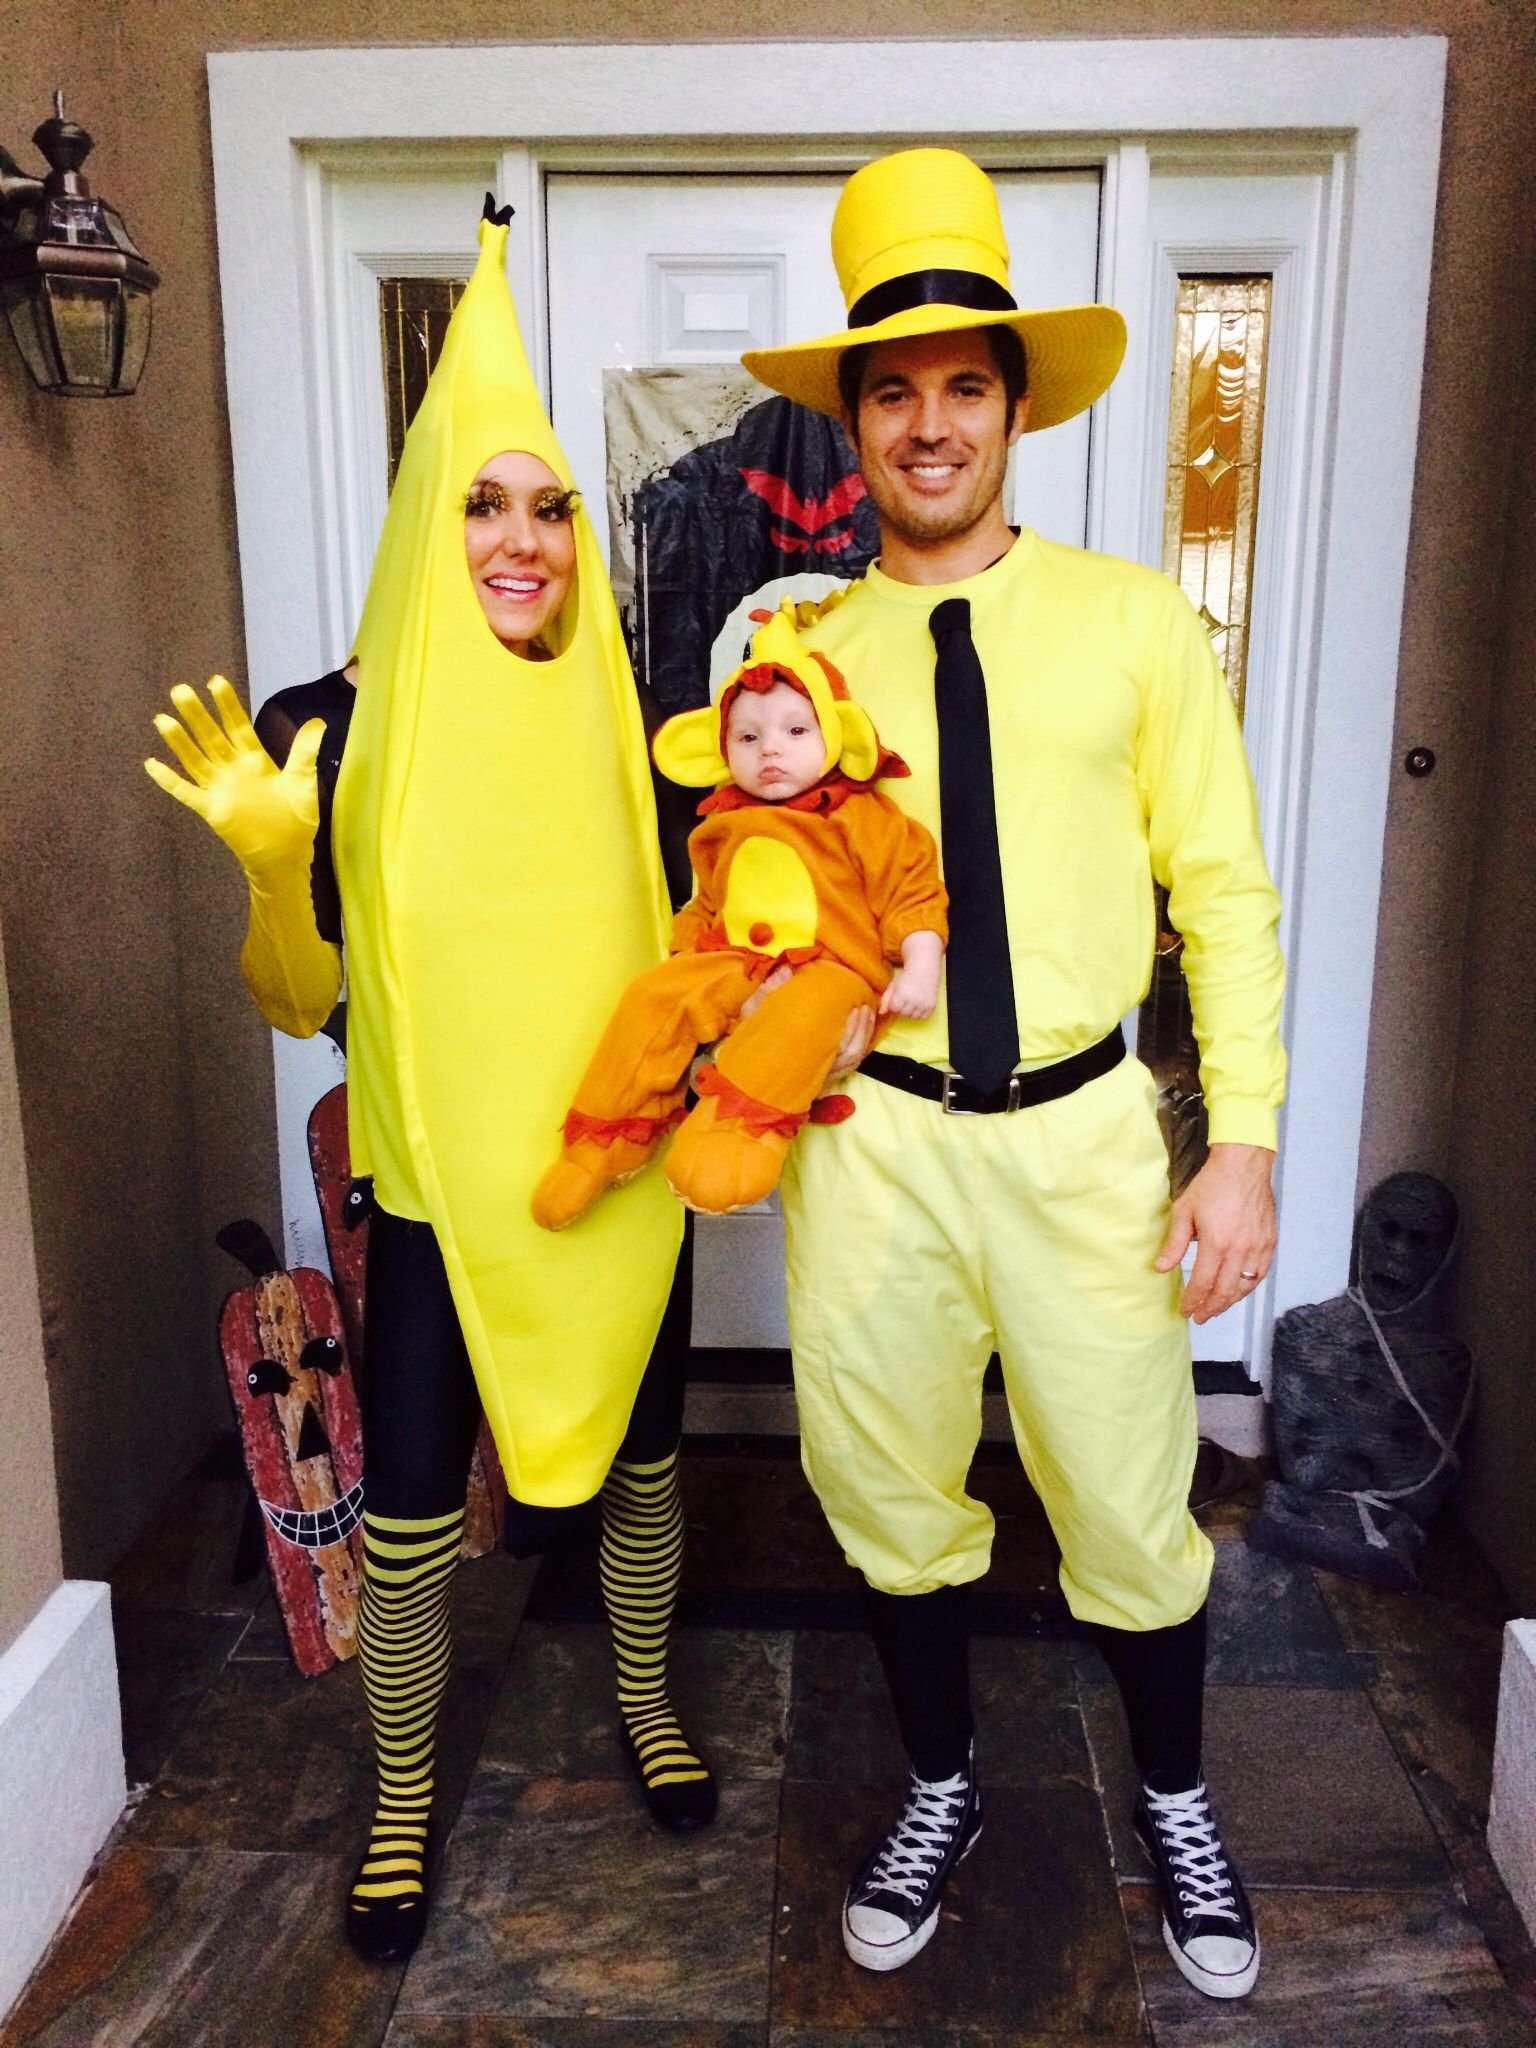 10 Gorgeous Family Of Three Halloween Costume Ideas family of three halloween costume idea curious george inspiration 1 2020